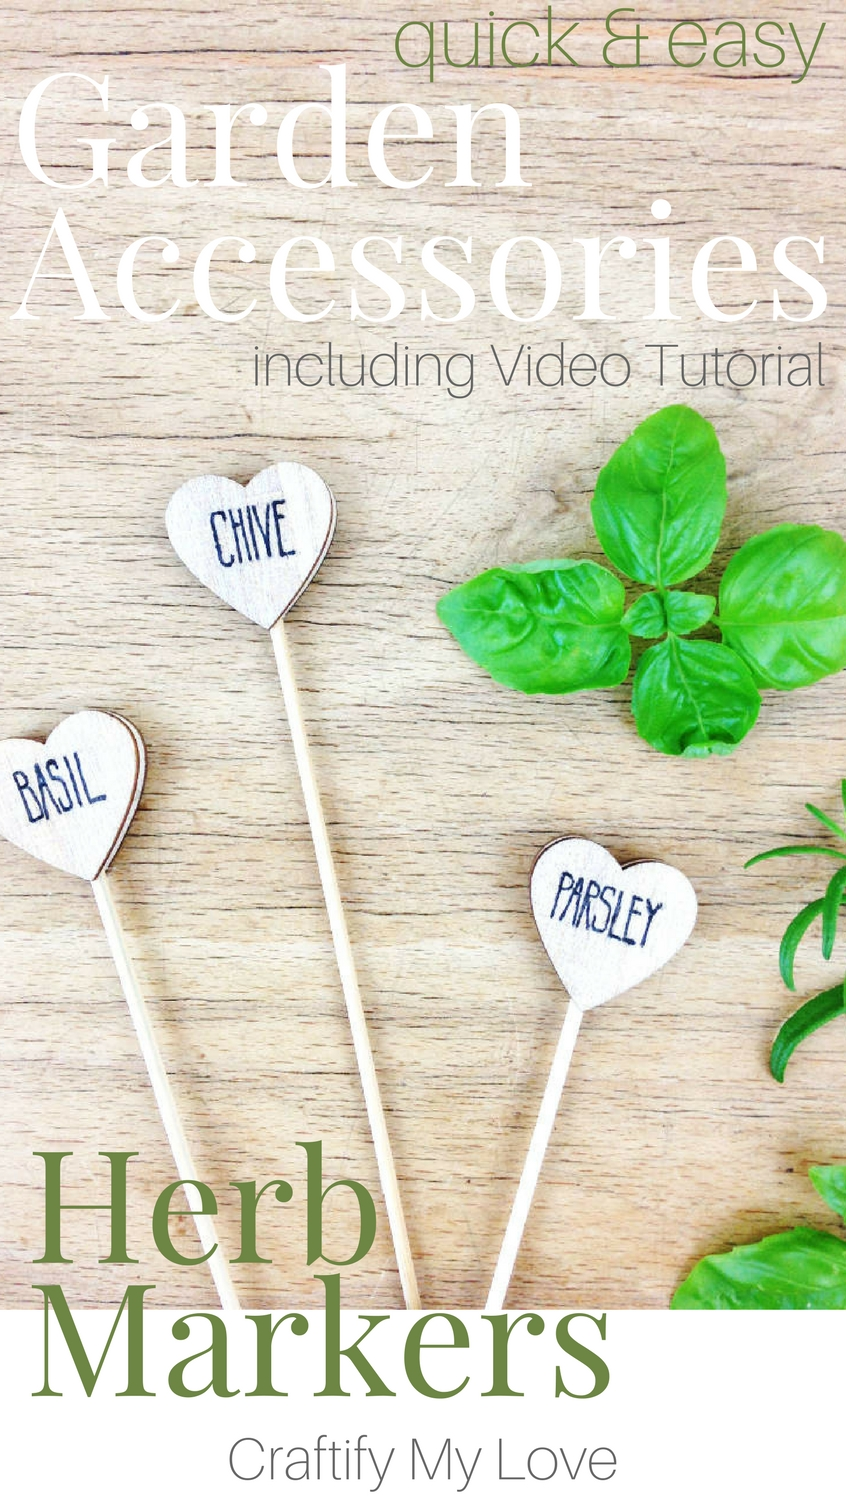 These DIY plant markers are a super easy crafts project for your herb garden! I'm so glad I had this idea s they make excellent little gifts for Mother's Day or when you're invited to your friends house. Click now for a simple step-by-step instructions including video tutorial! | #gardenDIY #herbmarkers #giftidea #simplecrafts #MothersDay